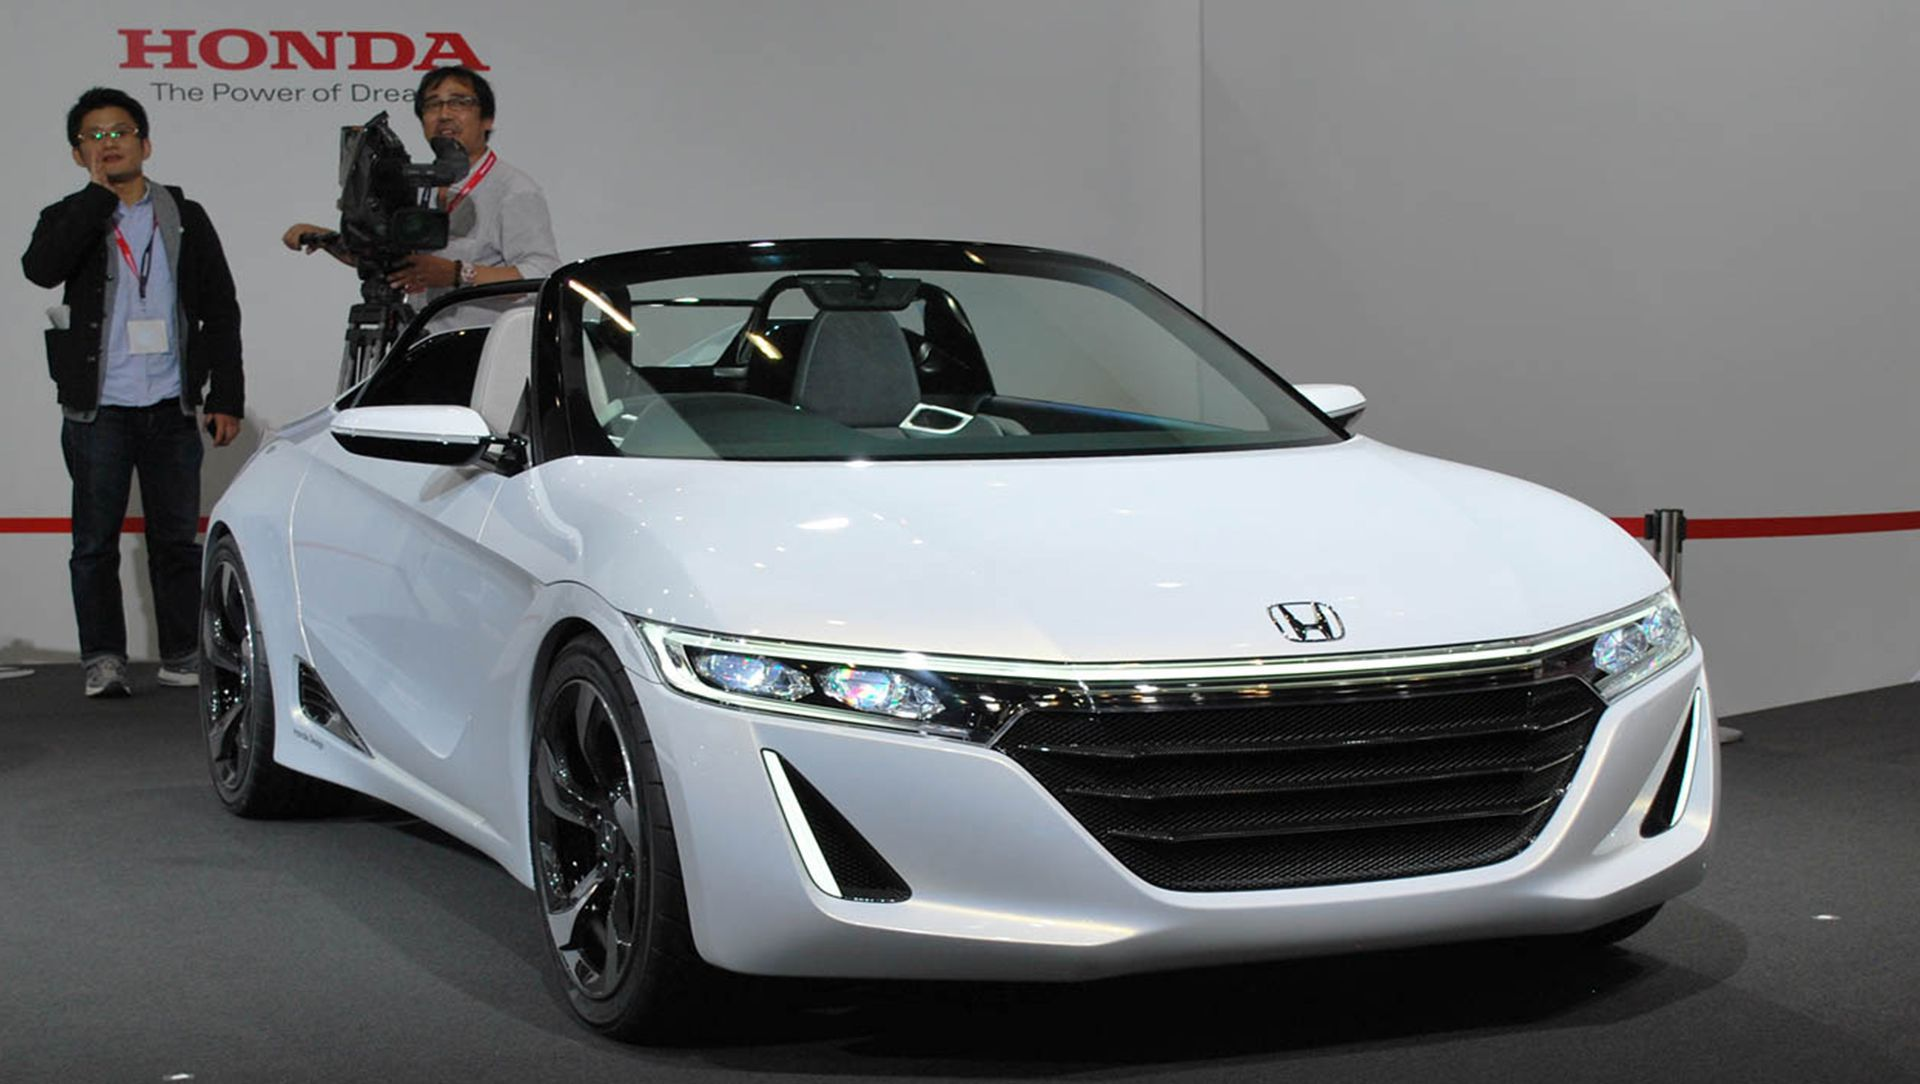 Exceptional 2013 Tokyo Motor Show : Honda S660 Concept Portends A New Kei Car For 2015